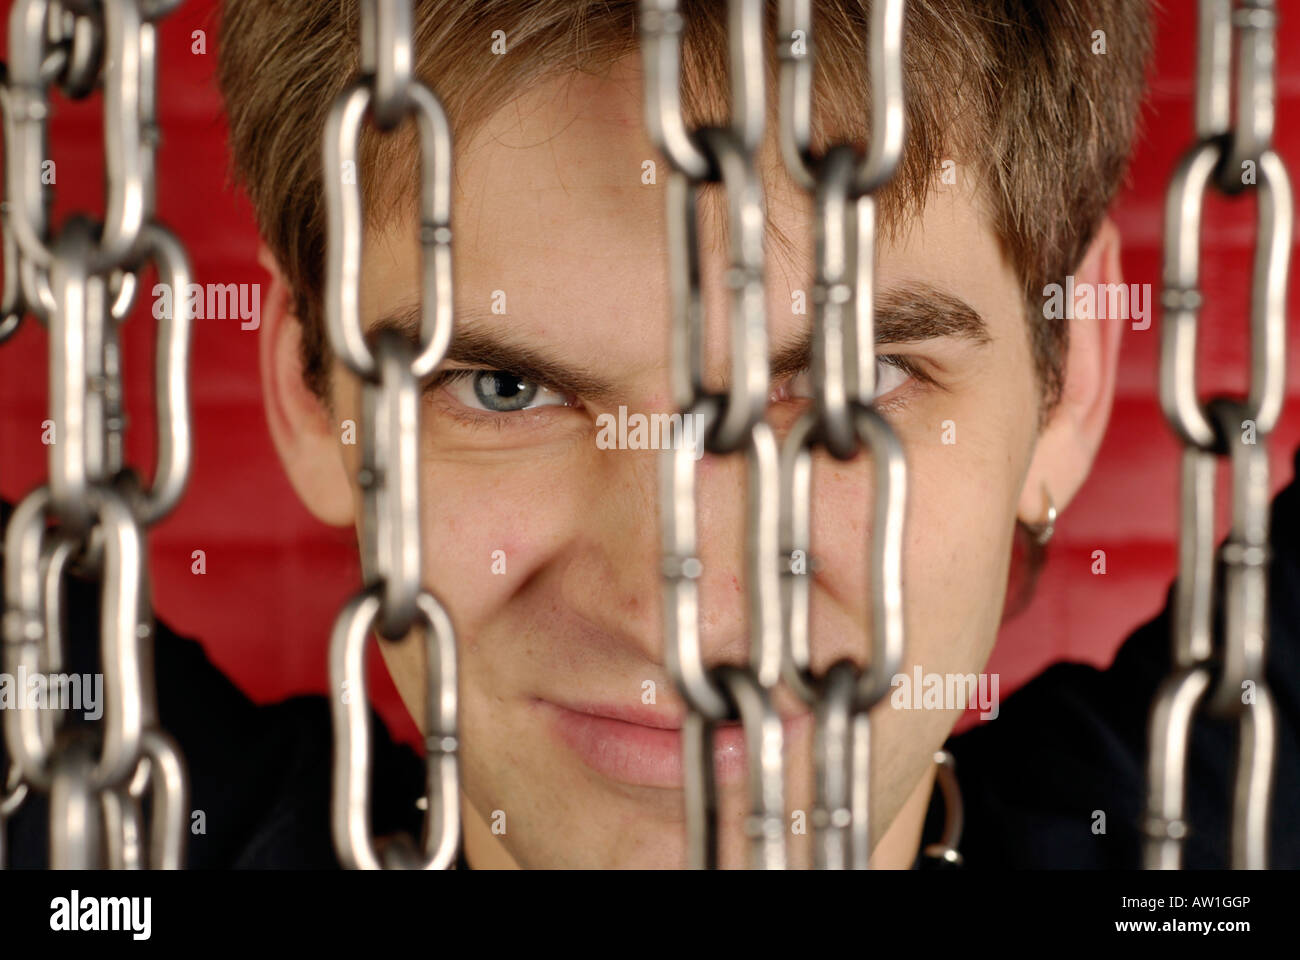 Young guy with chains. Stock Photo